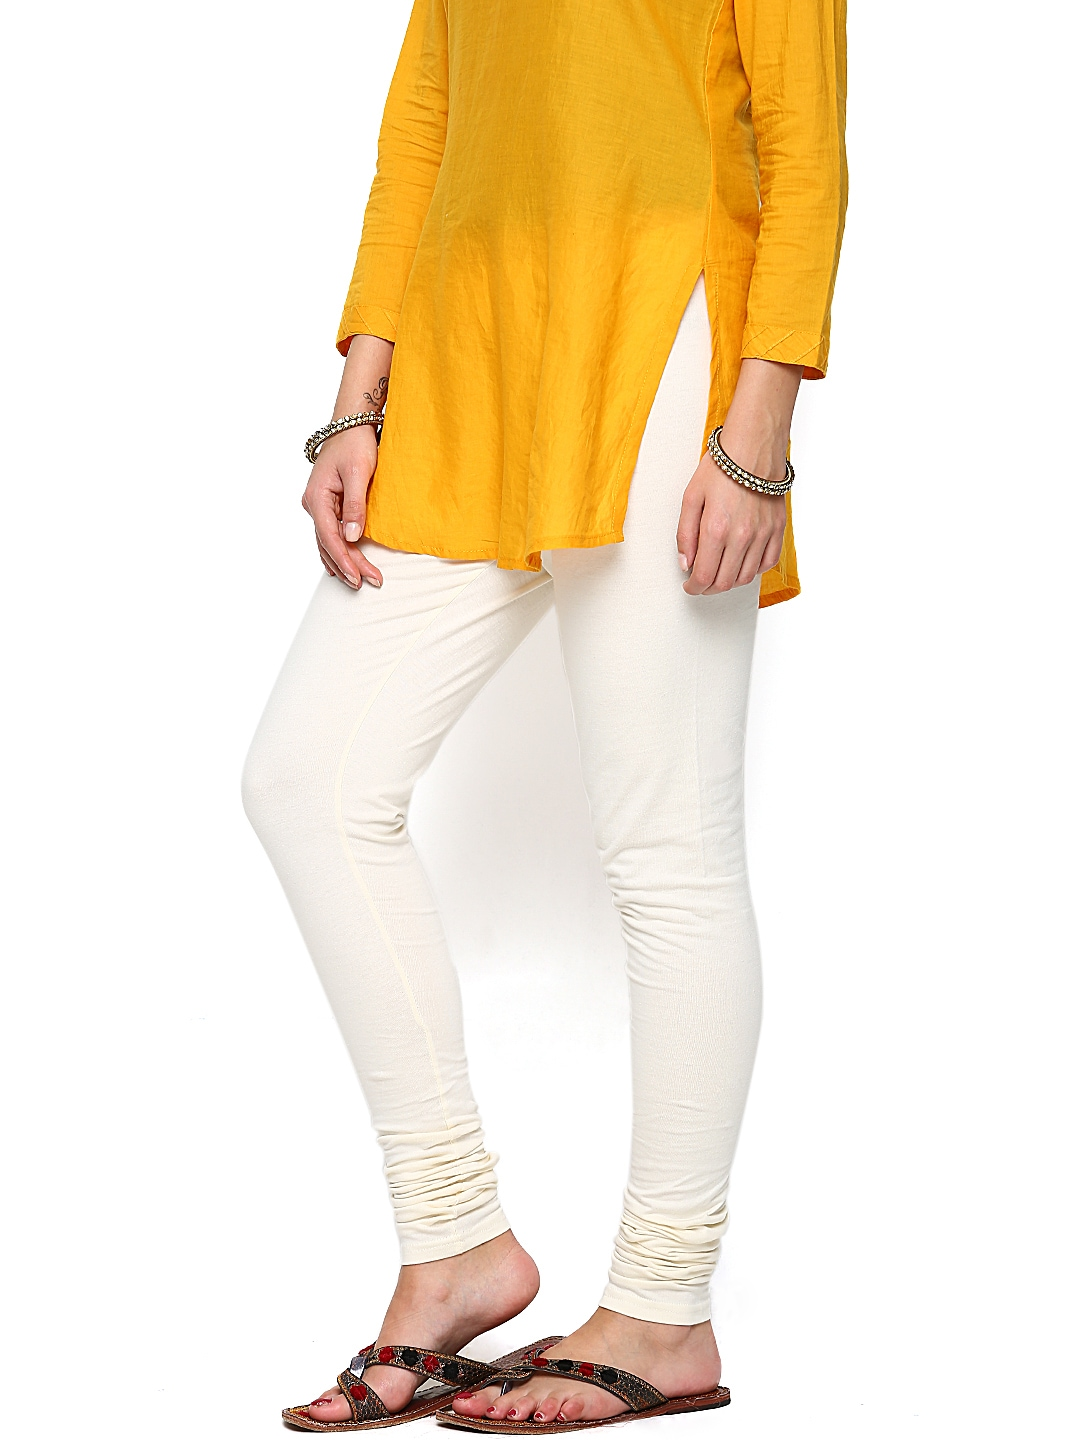 Free shipping on leggings for women at disborunmaba.ga Shop for white, black, printed, high waisted, faux leather and more in the best brands. Free shipping and returns.